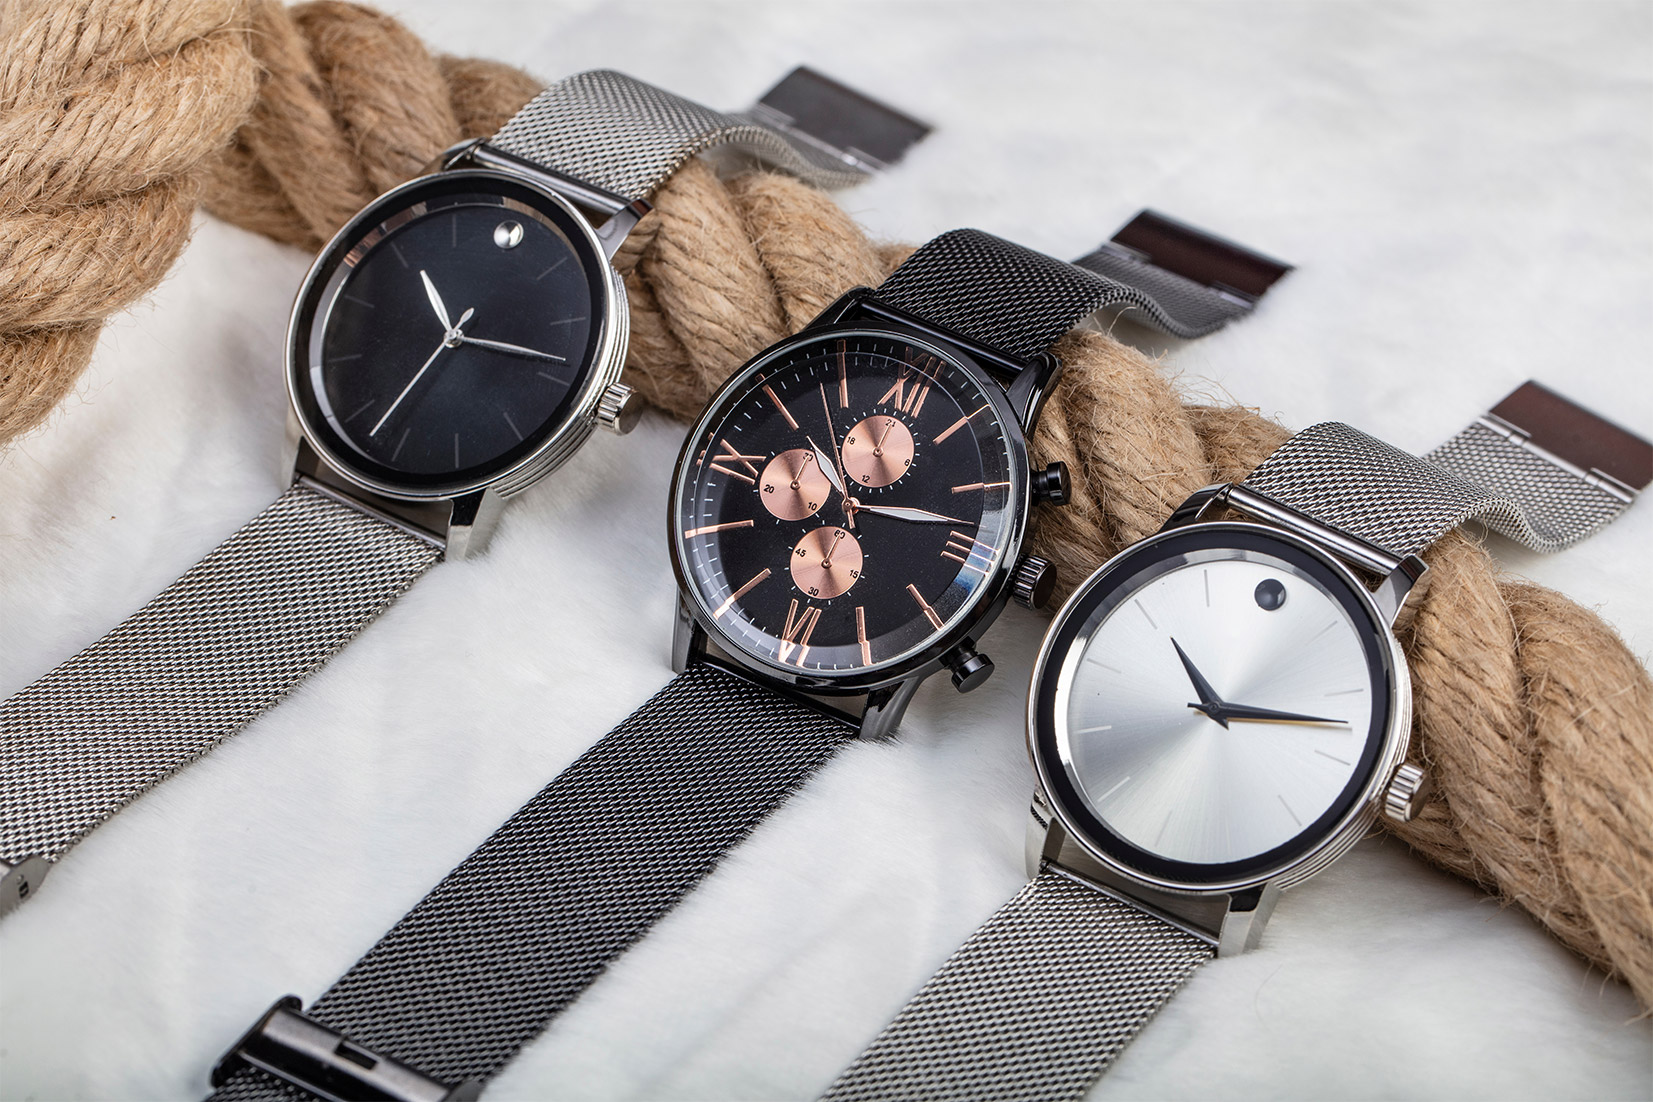 The best watches for men in 2020